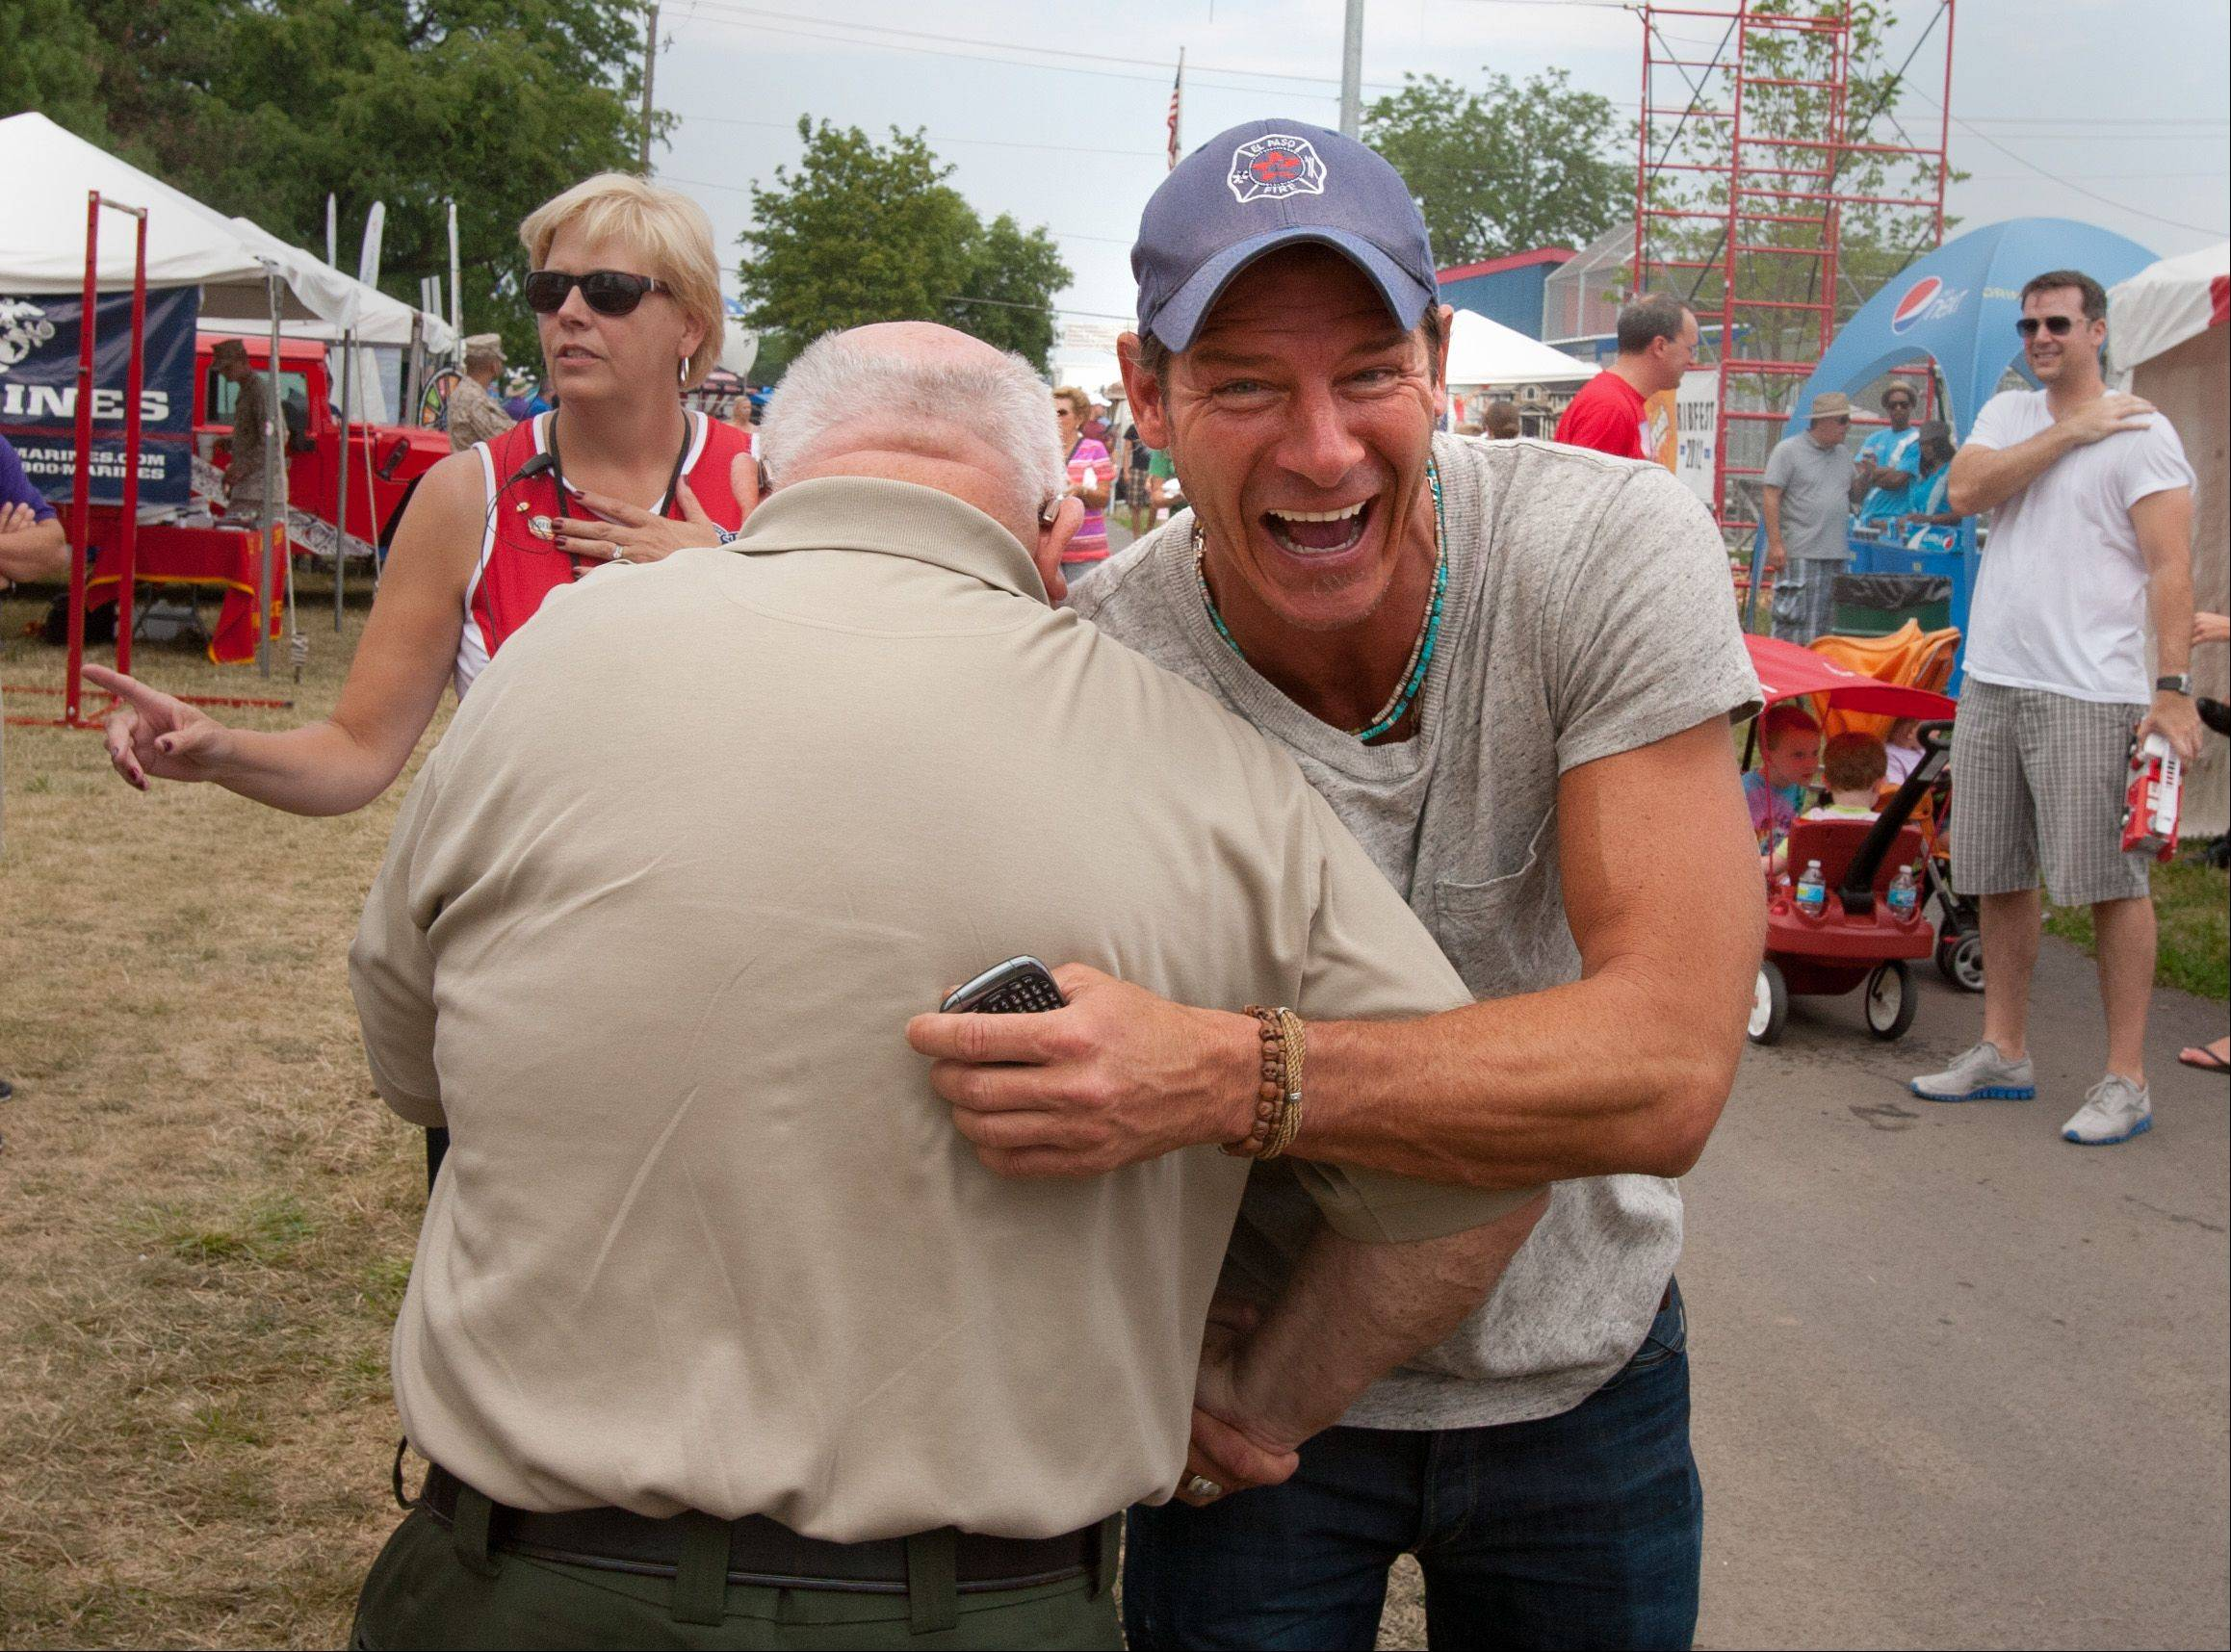 """Extreme Makeover: Home Edition"" star Ty Pennington gets a greeting Saturday from Naperville Mayor George Pradel during the 25th annual Ribfest at Knoch Park. Pennington came to the festival to offer grilling advice and meet fans."